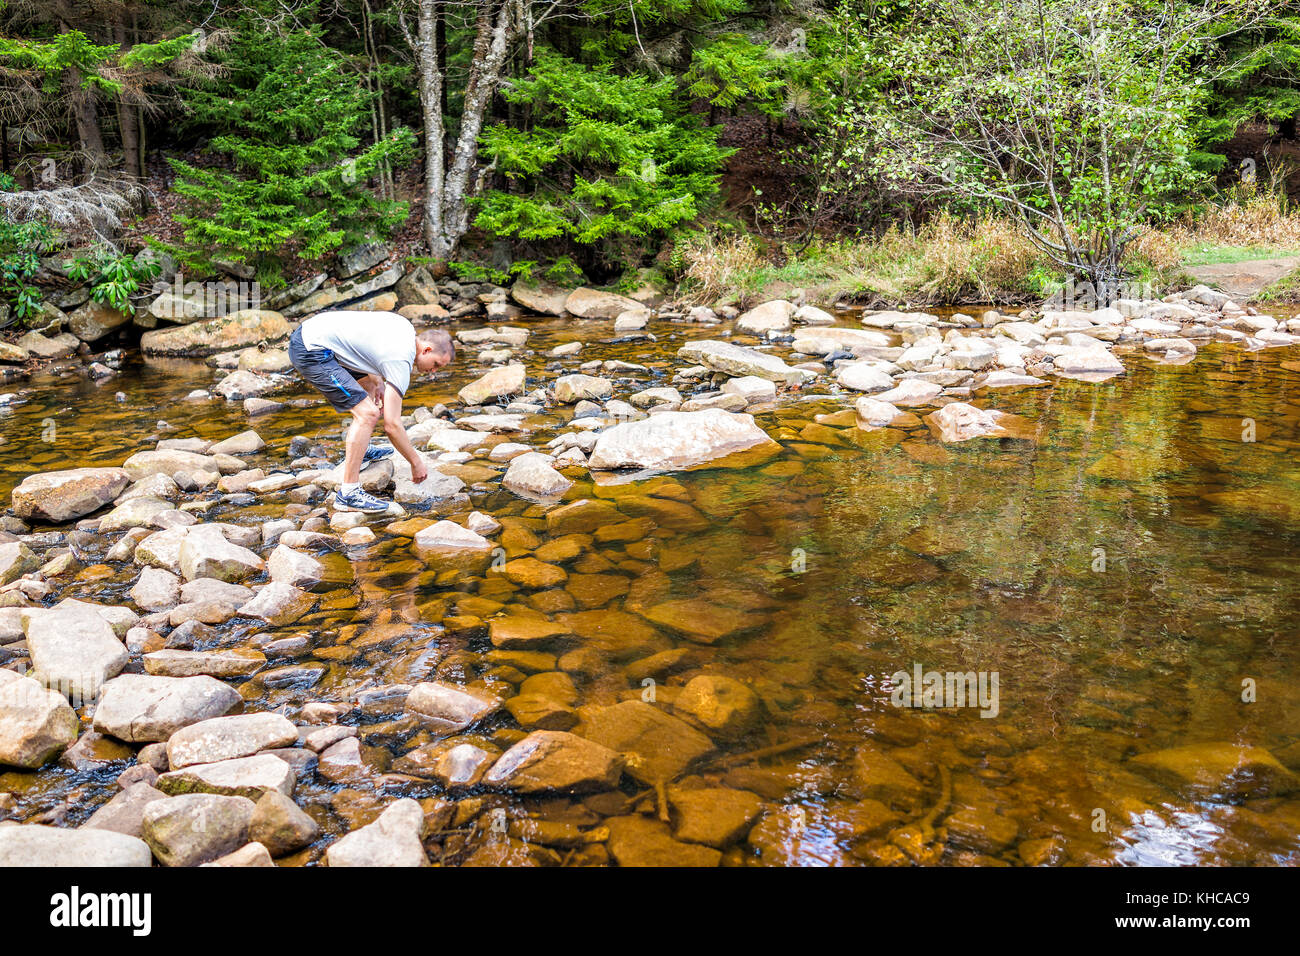 Young man enjoying nature on peaceful, calm Red Creek river in Dolly Sods, West Virginia during sunny day with reflection - Stock Image